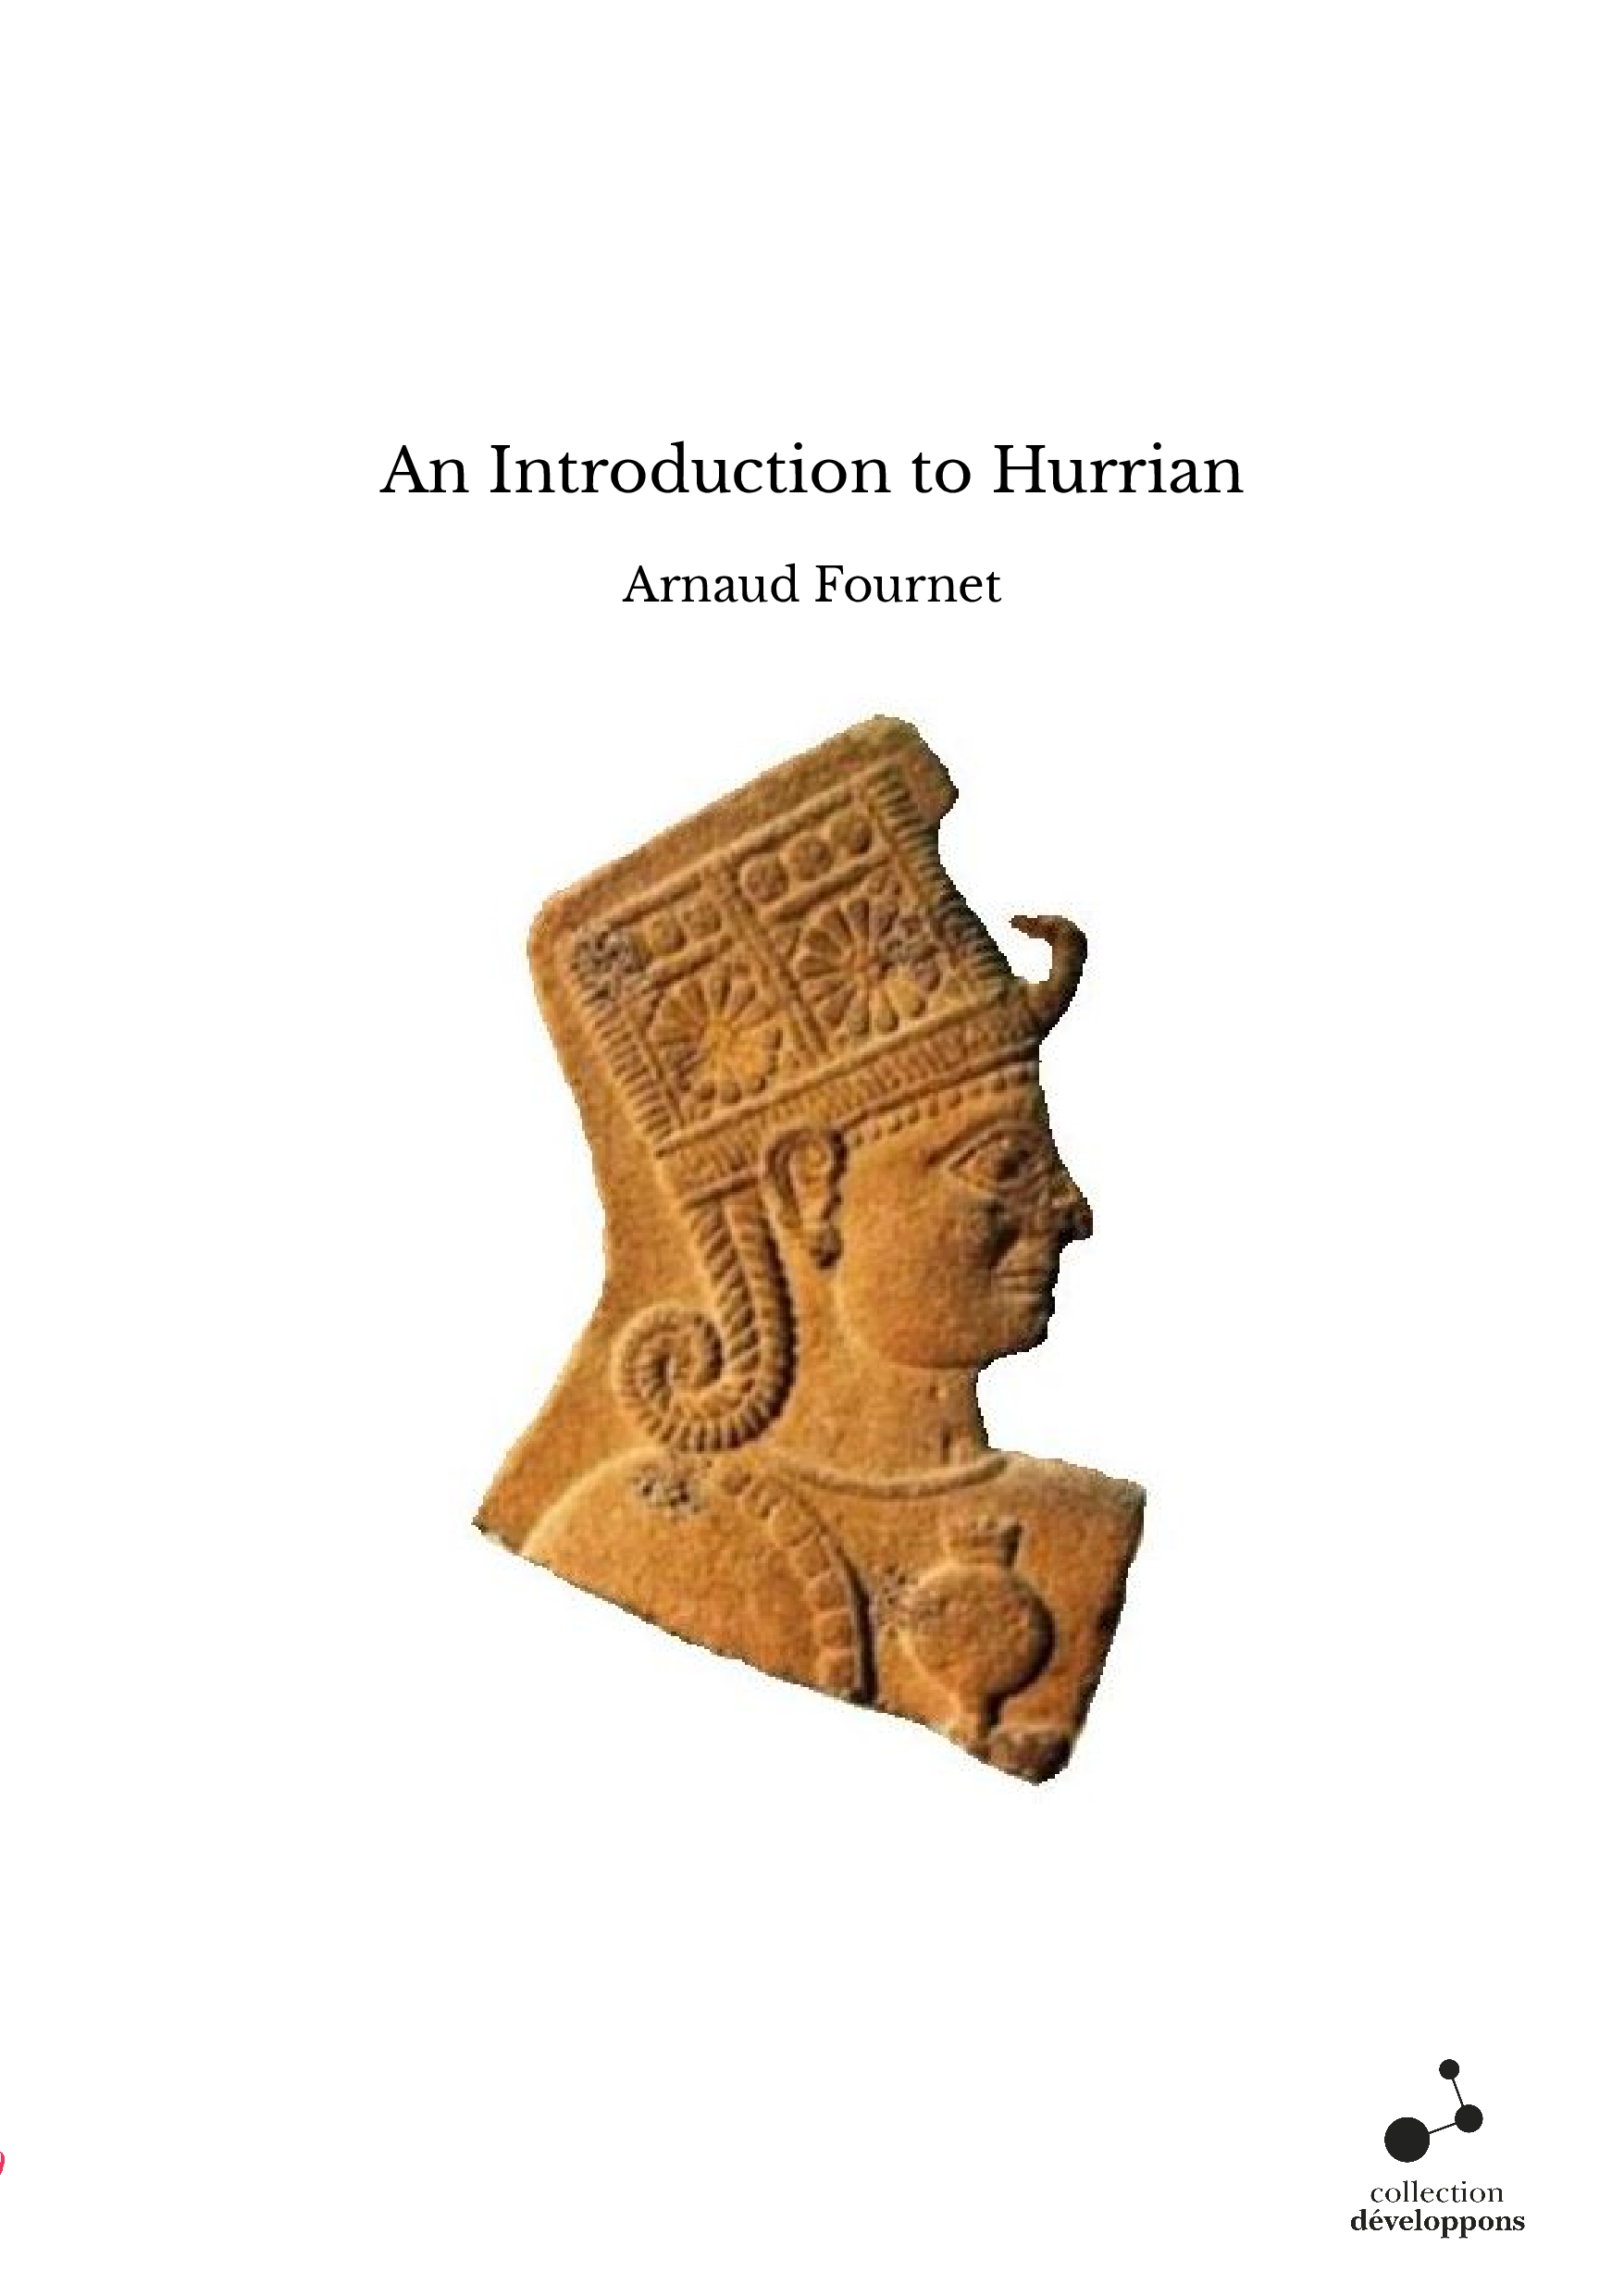 An Introduction to Hurrian